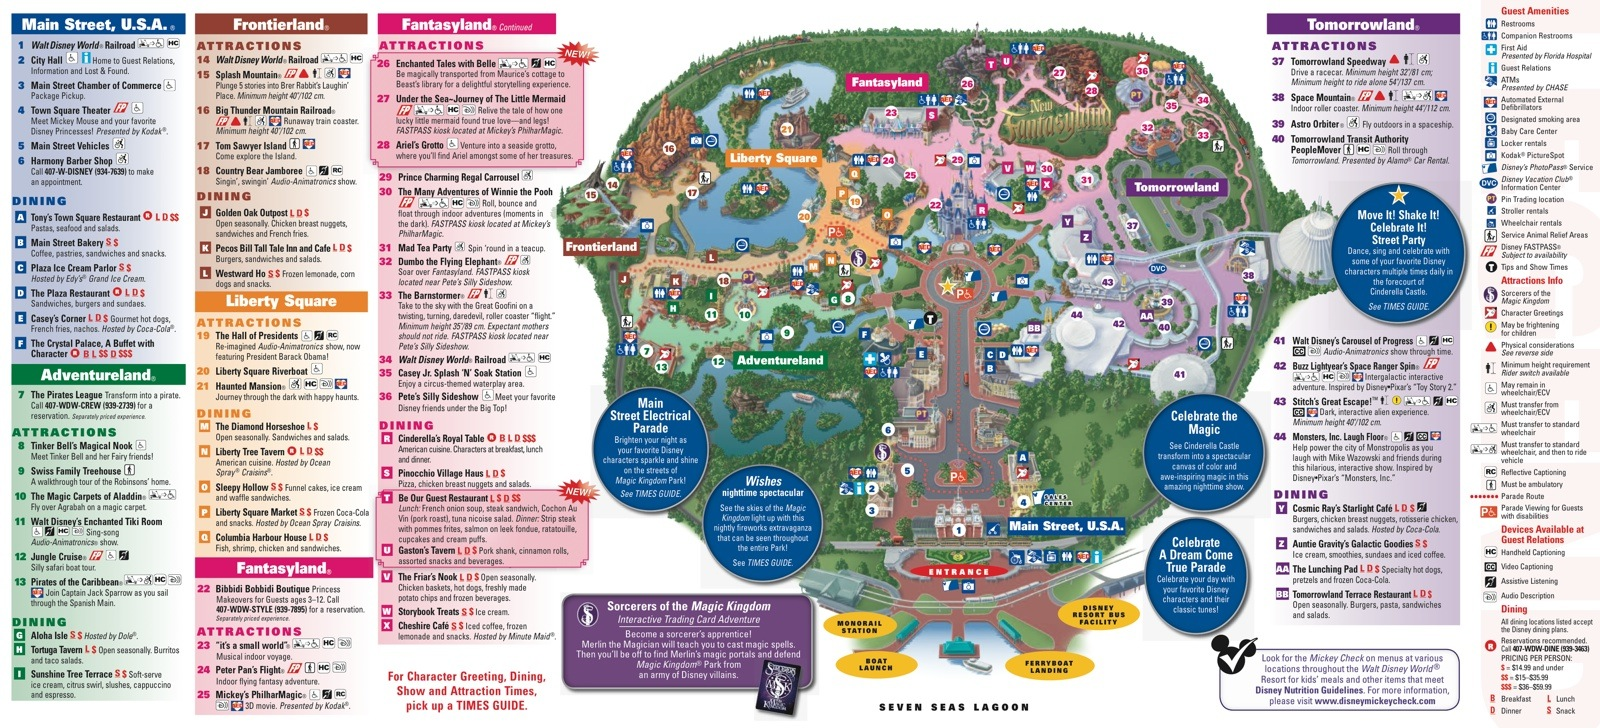 Magic Kingdom Orlando Map New Fantasyland on the Magic Kingdom guide map   Photo 1 of 2 Magic Kingdom Orlando Map